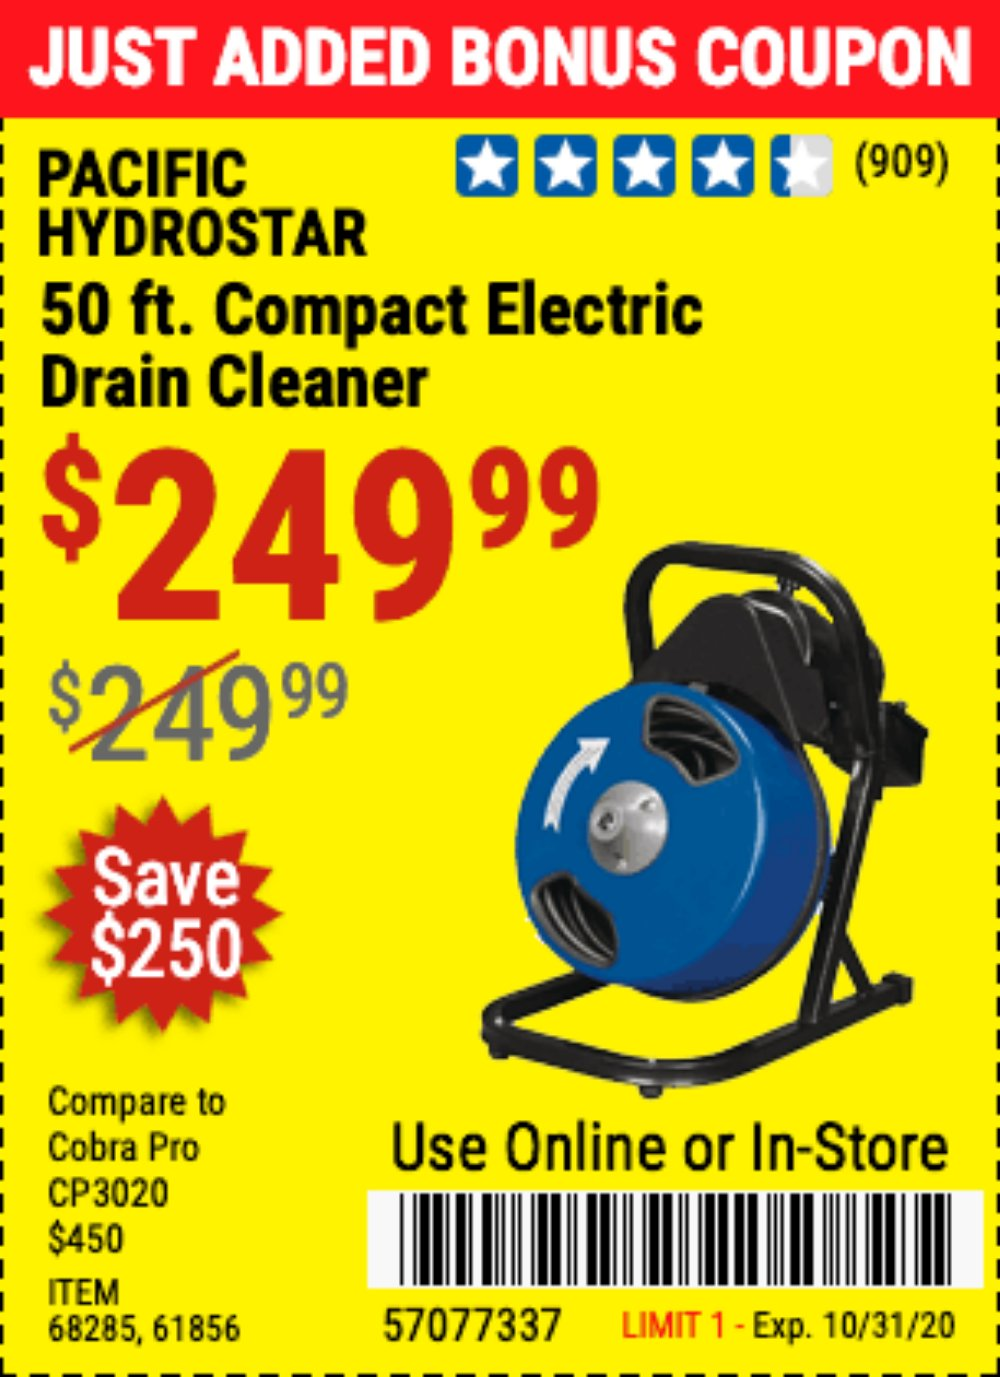 Harbor Freight Coupon, HF Coupons - 50 Ft. Electric Drain Cleaner